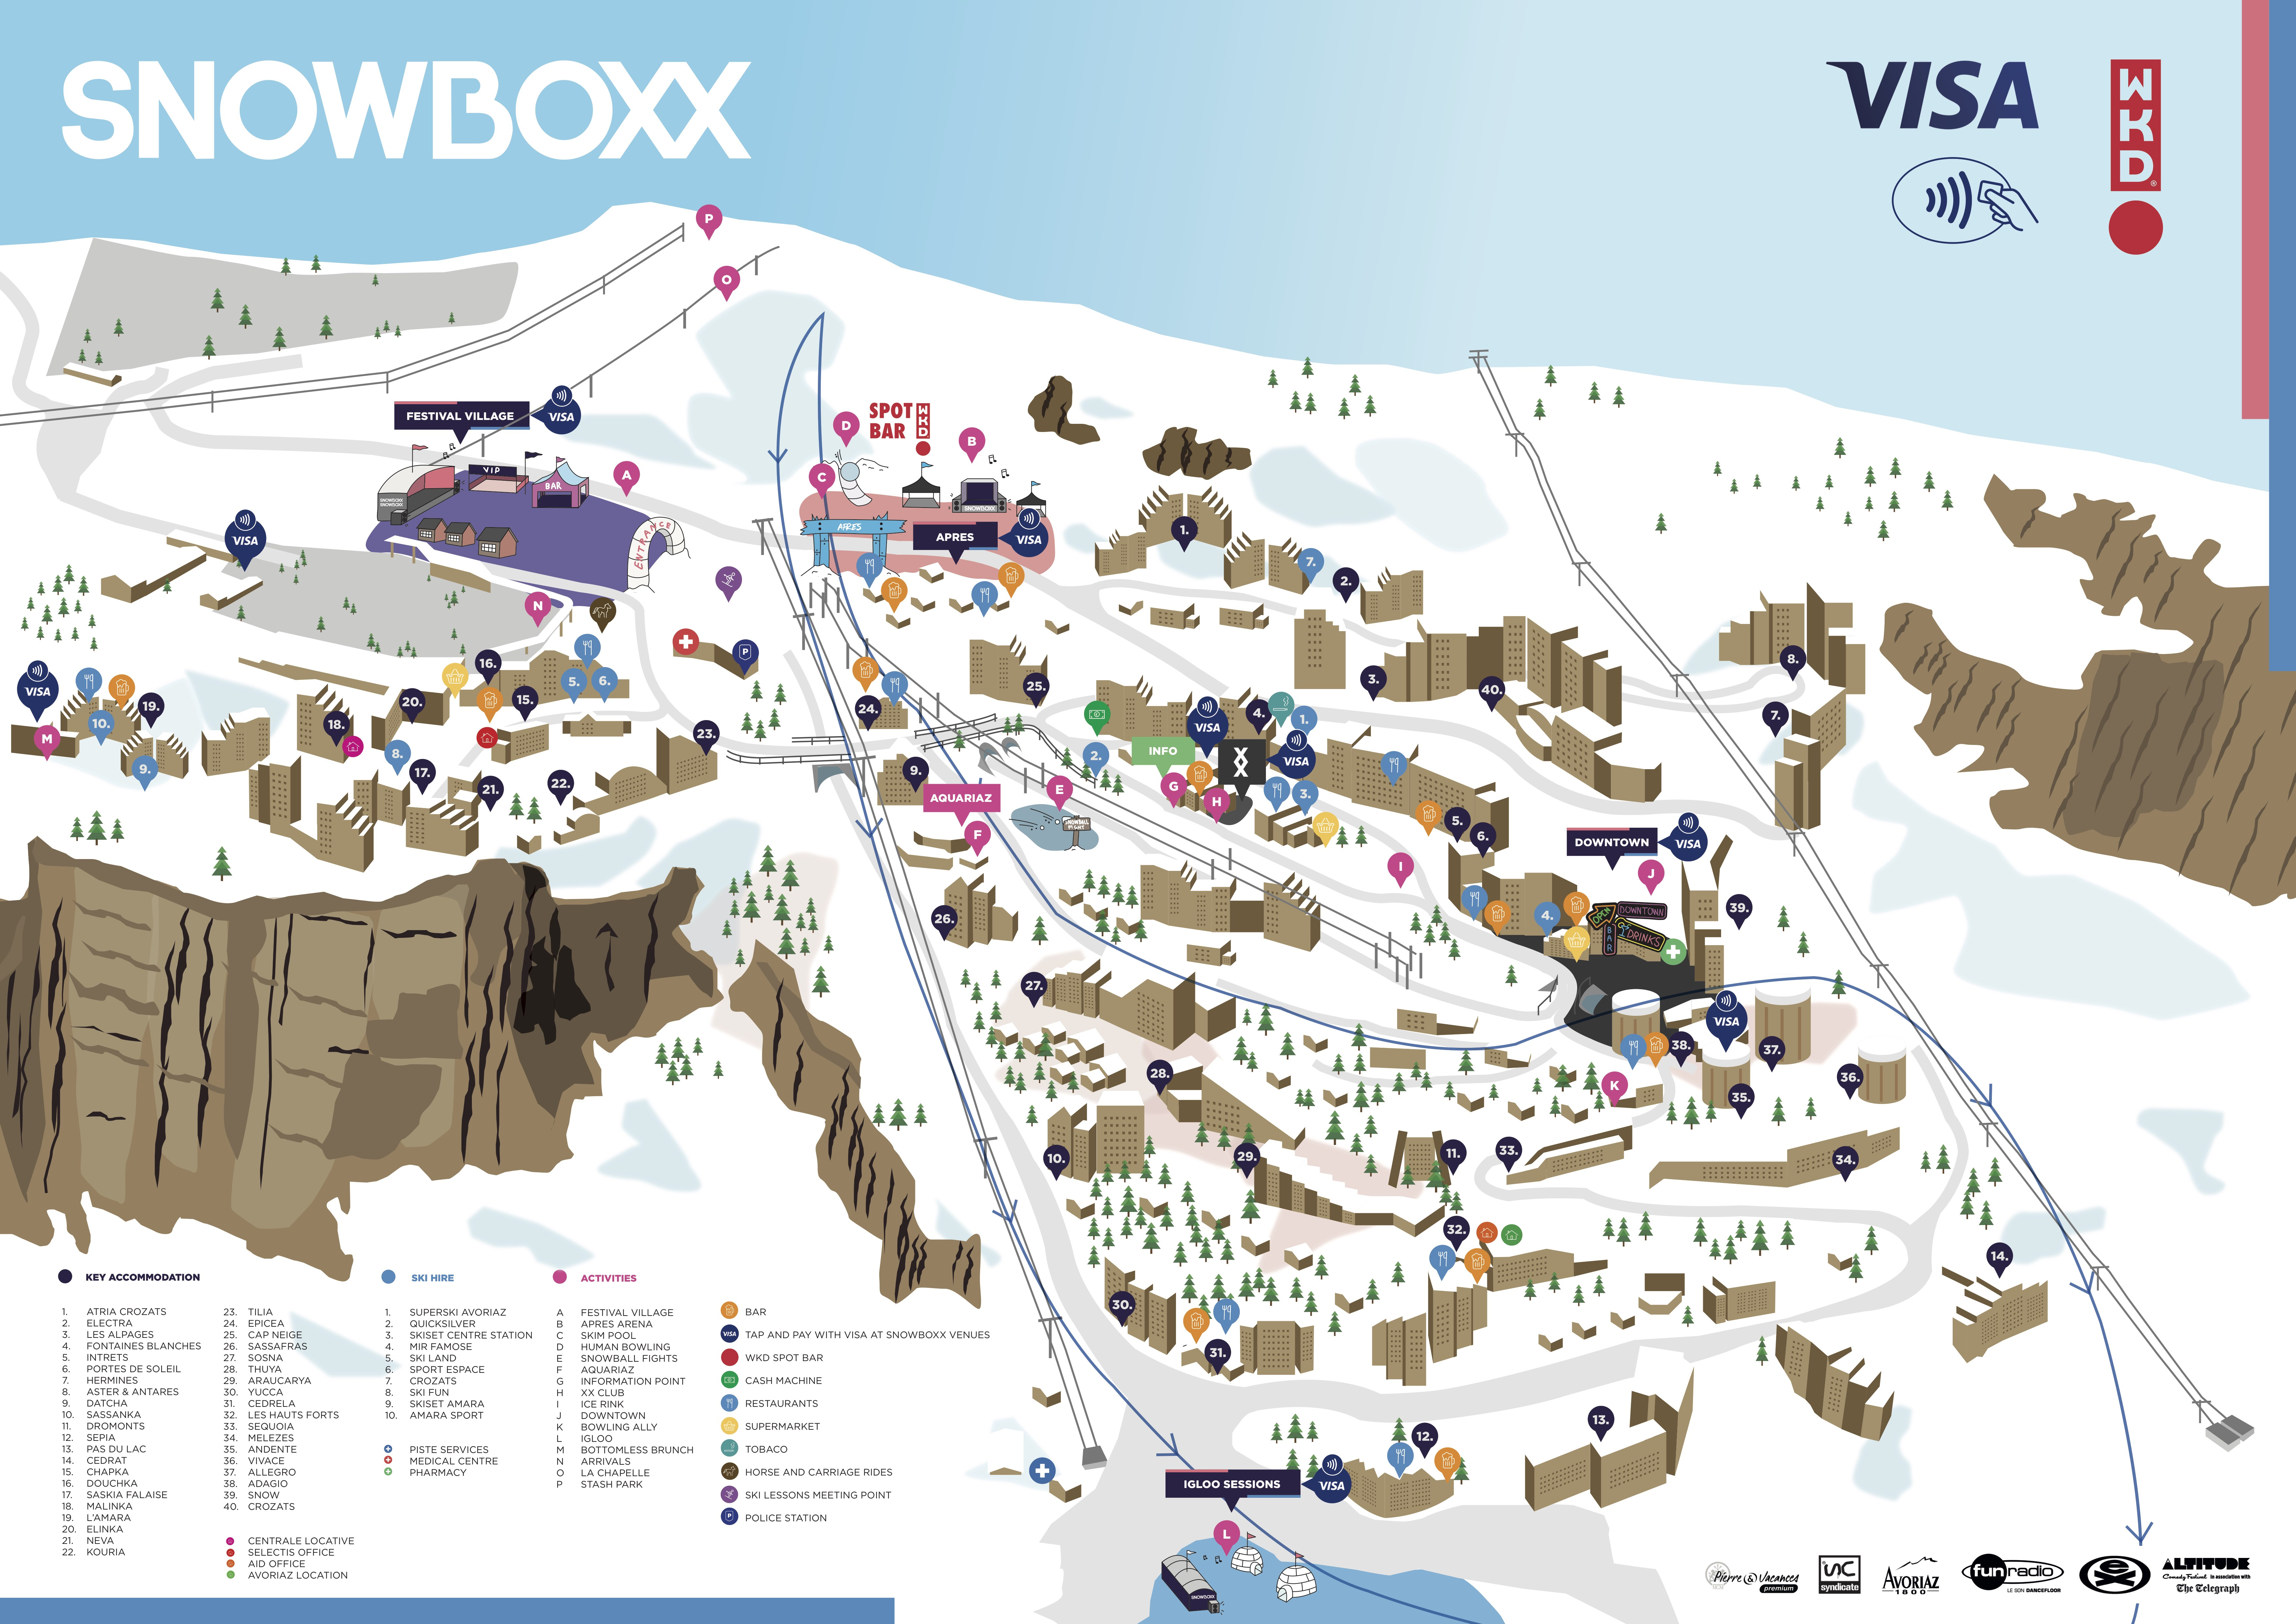 The official map of the Avoriaz resort with Snowboxx festival locations and accommodation